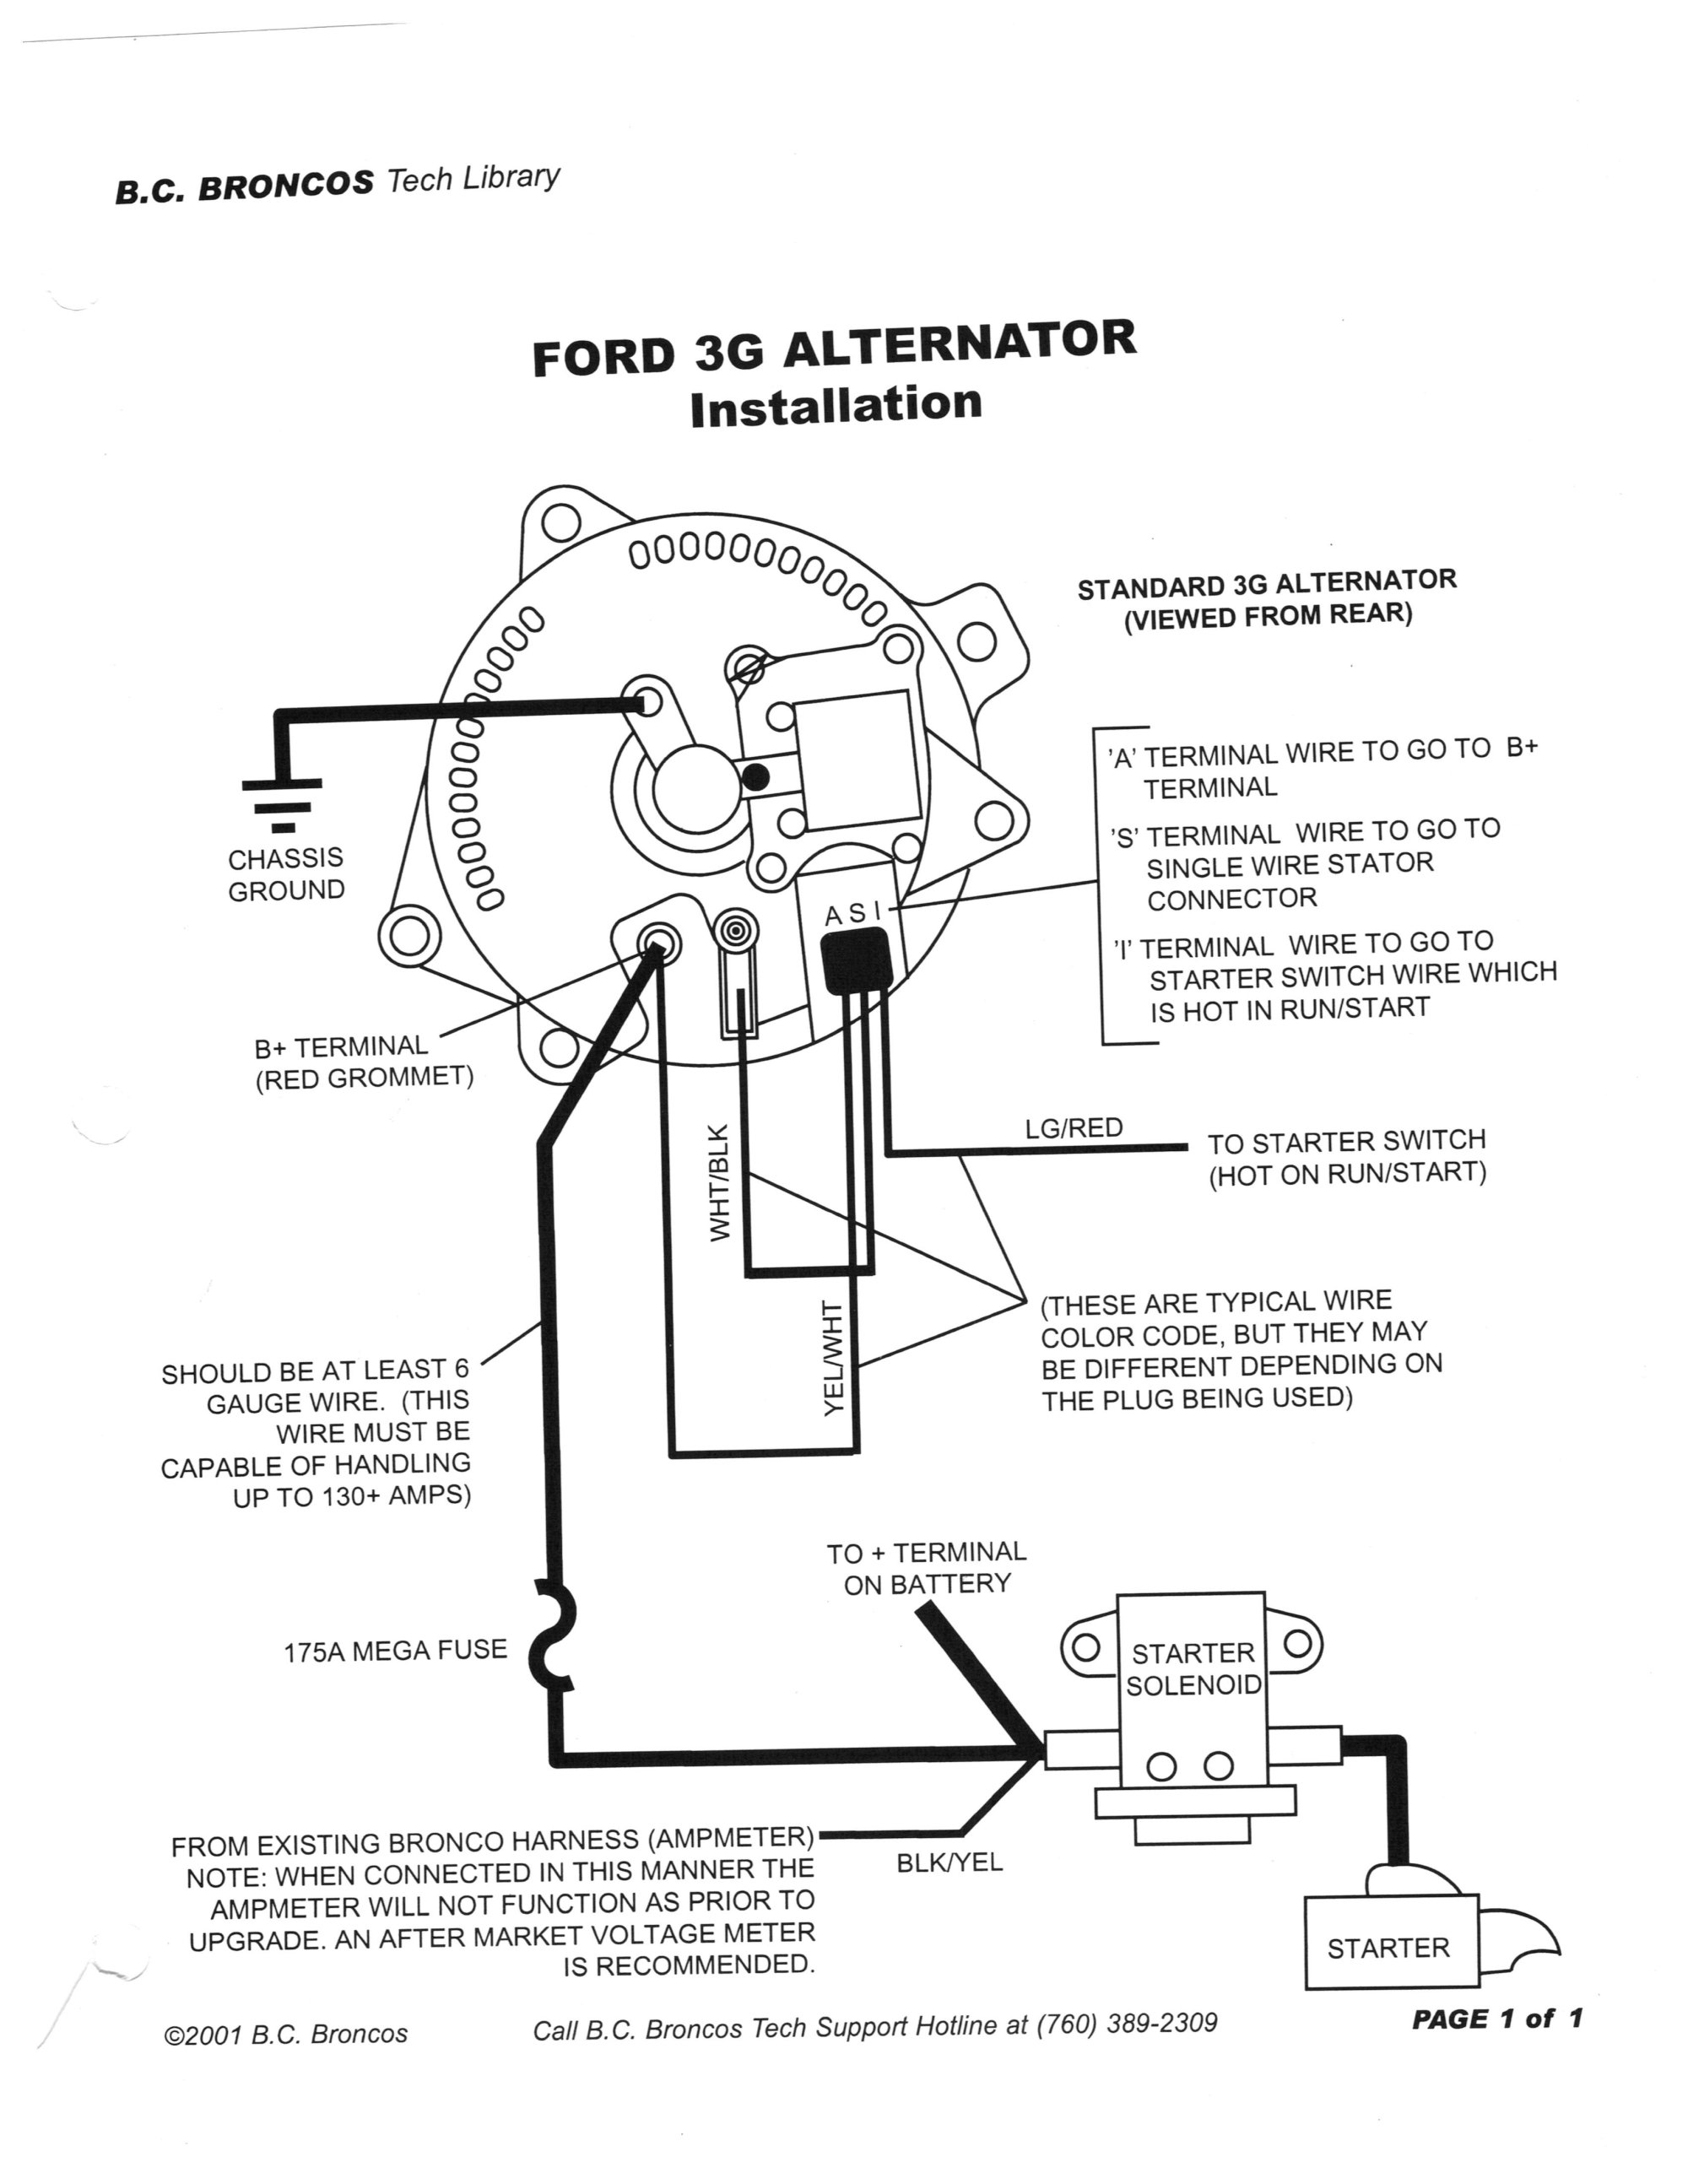 hight resolution of 1970 ford bronco alternator wiring data diagram schematic 98 ford explorer alternator wiring 1970 ford bronco